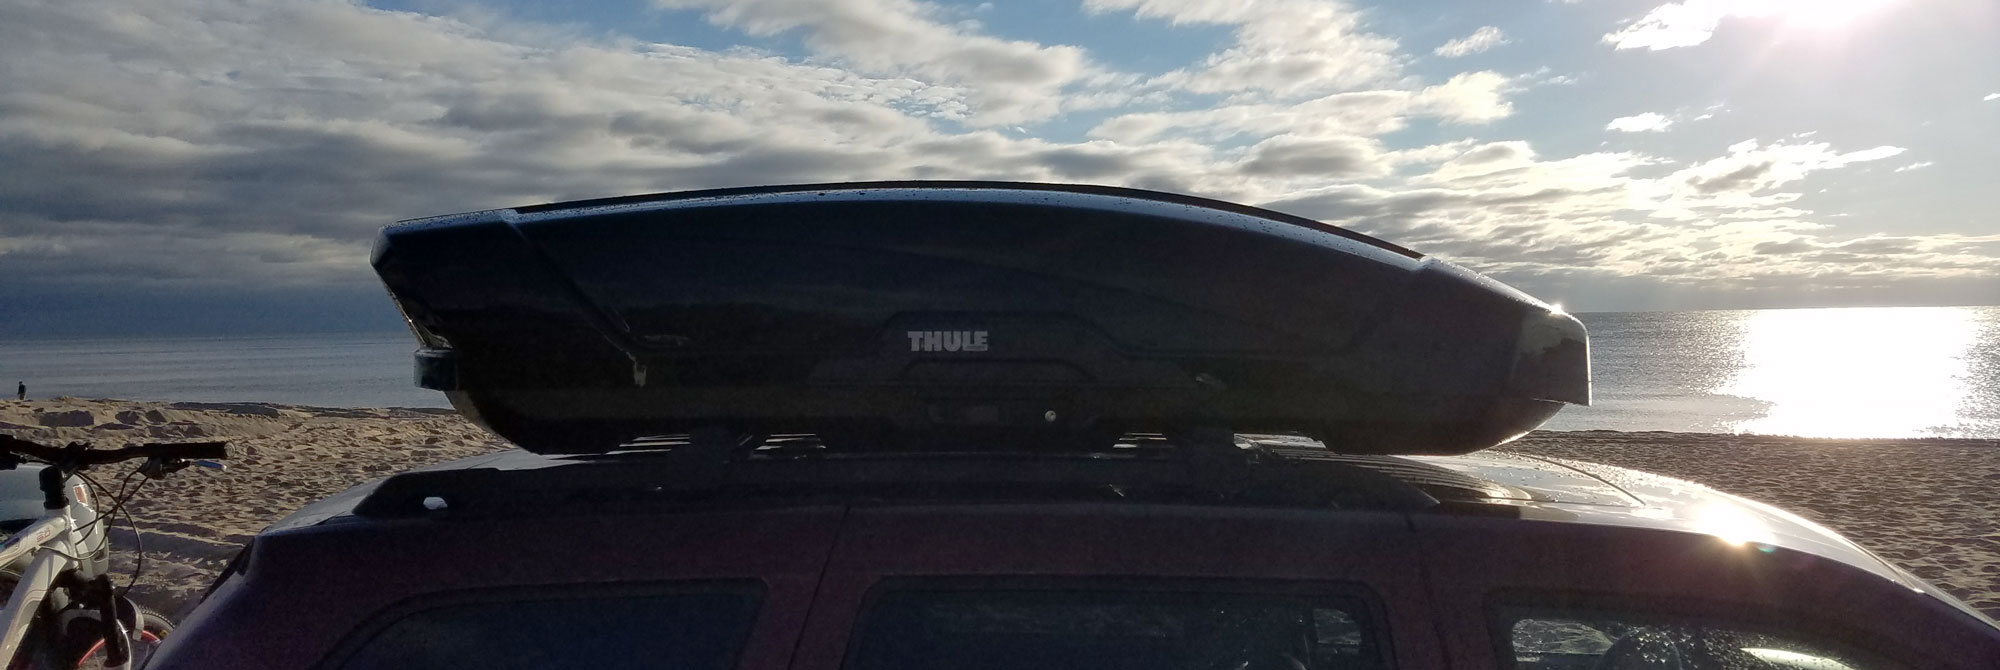 Thule Motion XT L Review